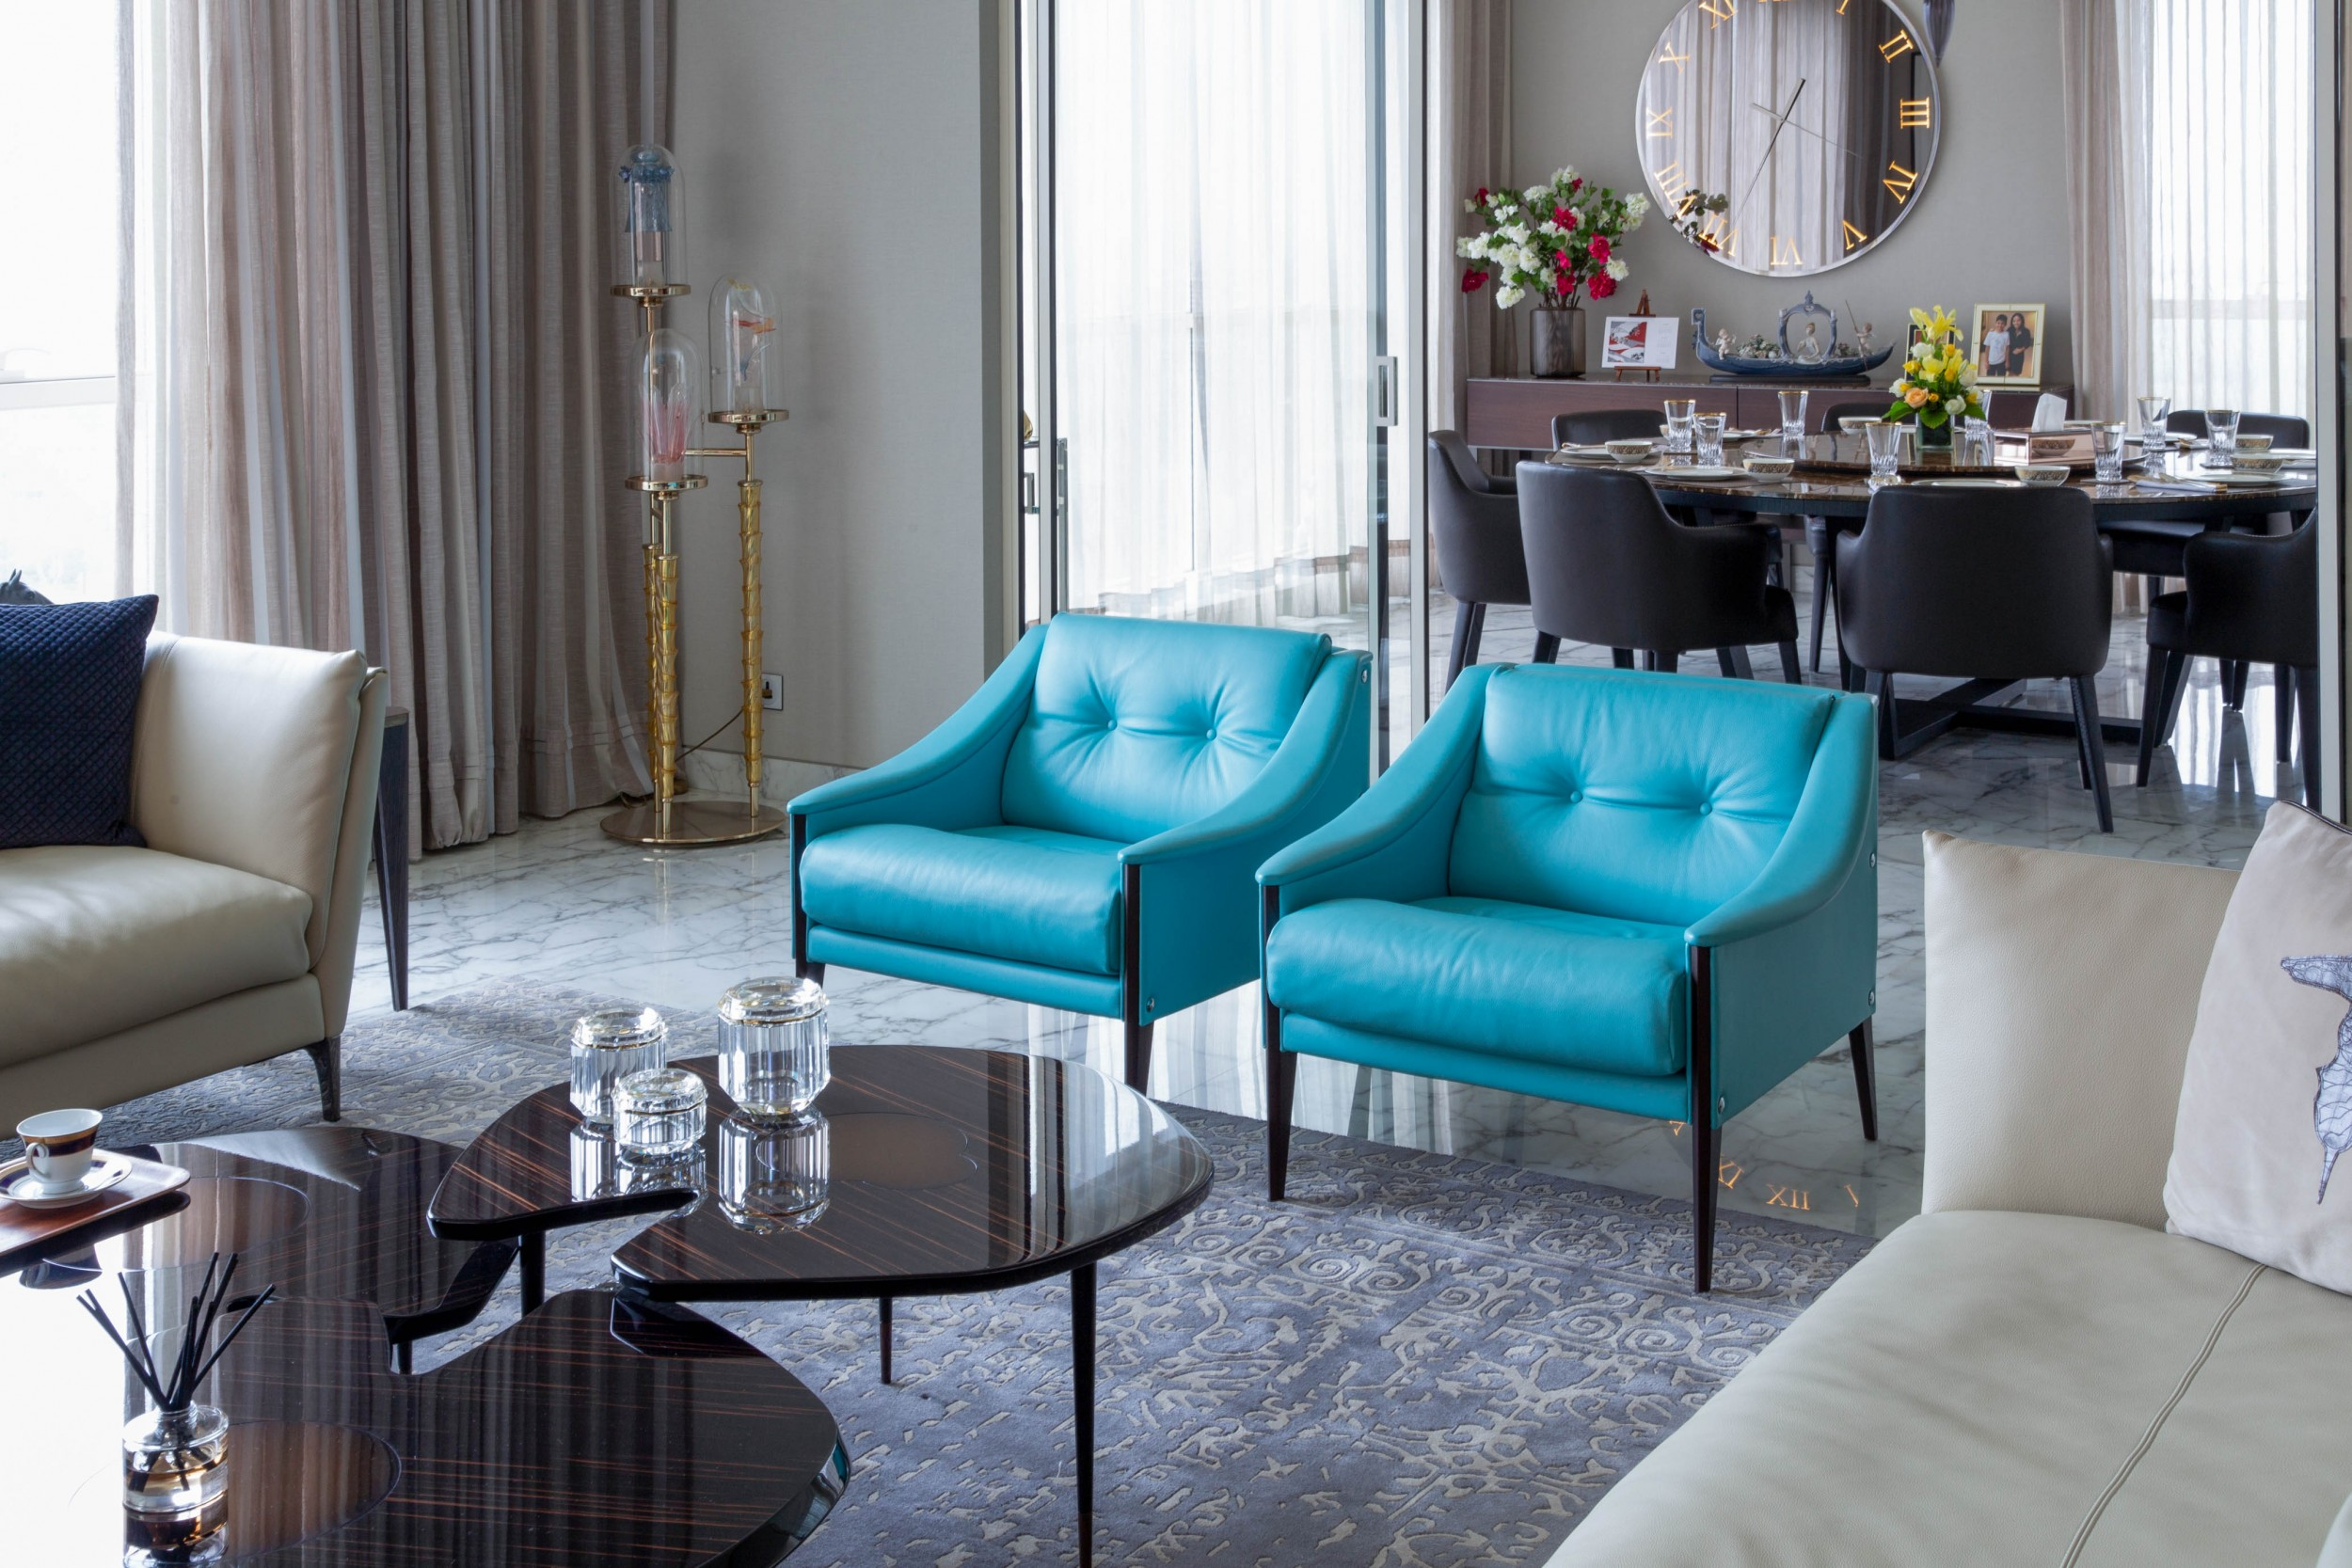 Exquisite Interior Design Projects By Top Italian Interior Designers interior design project Exquisite Interior Design Projects By Top Italian Interior Designers matteo 2